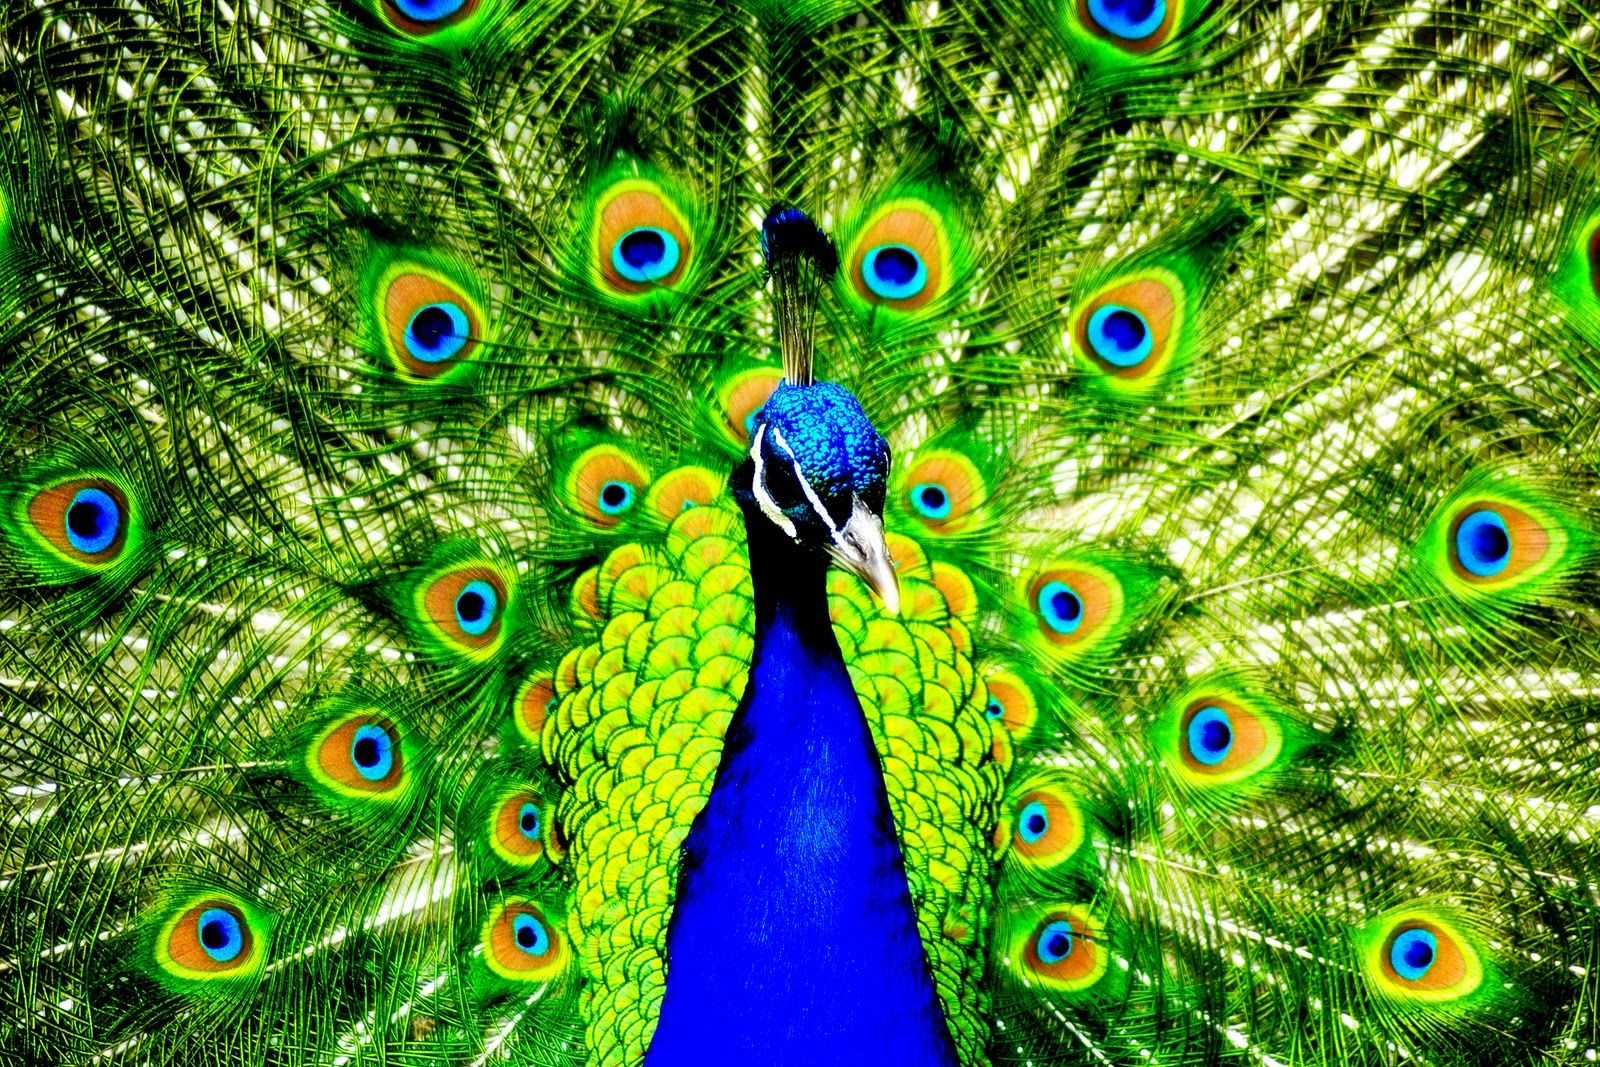 Stunning Peacock Colorful Photo Hd Wallpaper Desktop Background Peacock Pictures Peacock Images Peacock Wallpaper